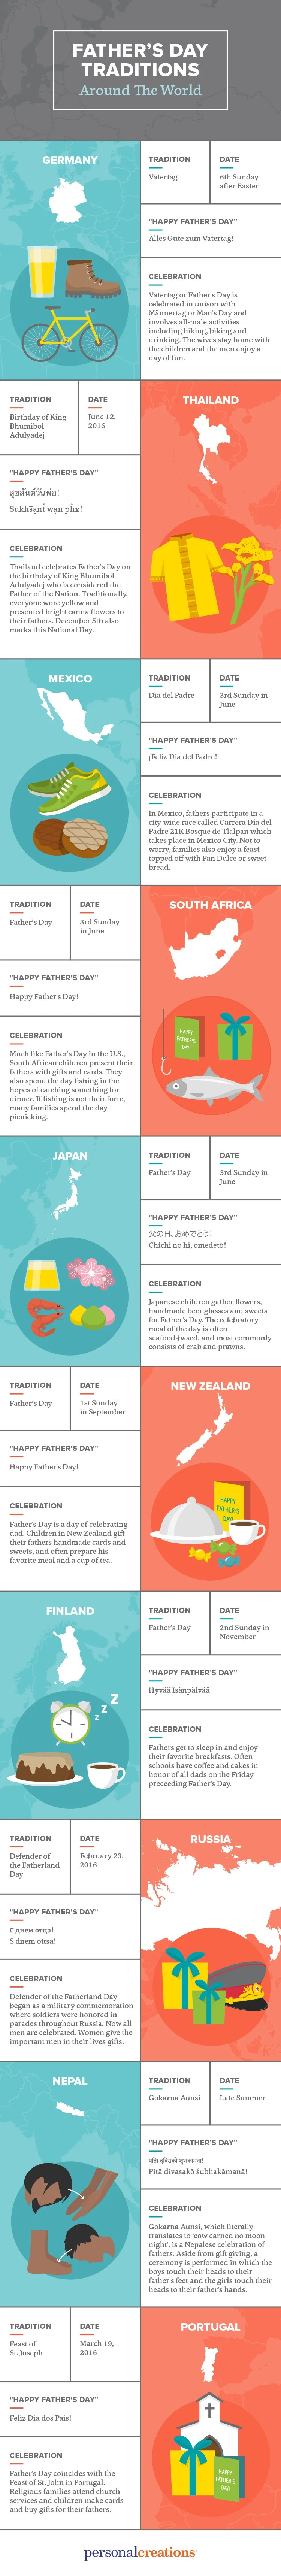 pc-fathers-day-traditions2-2